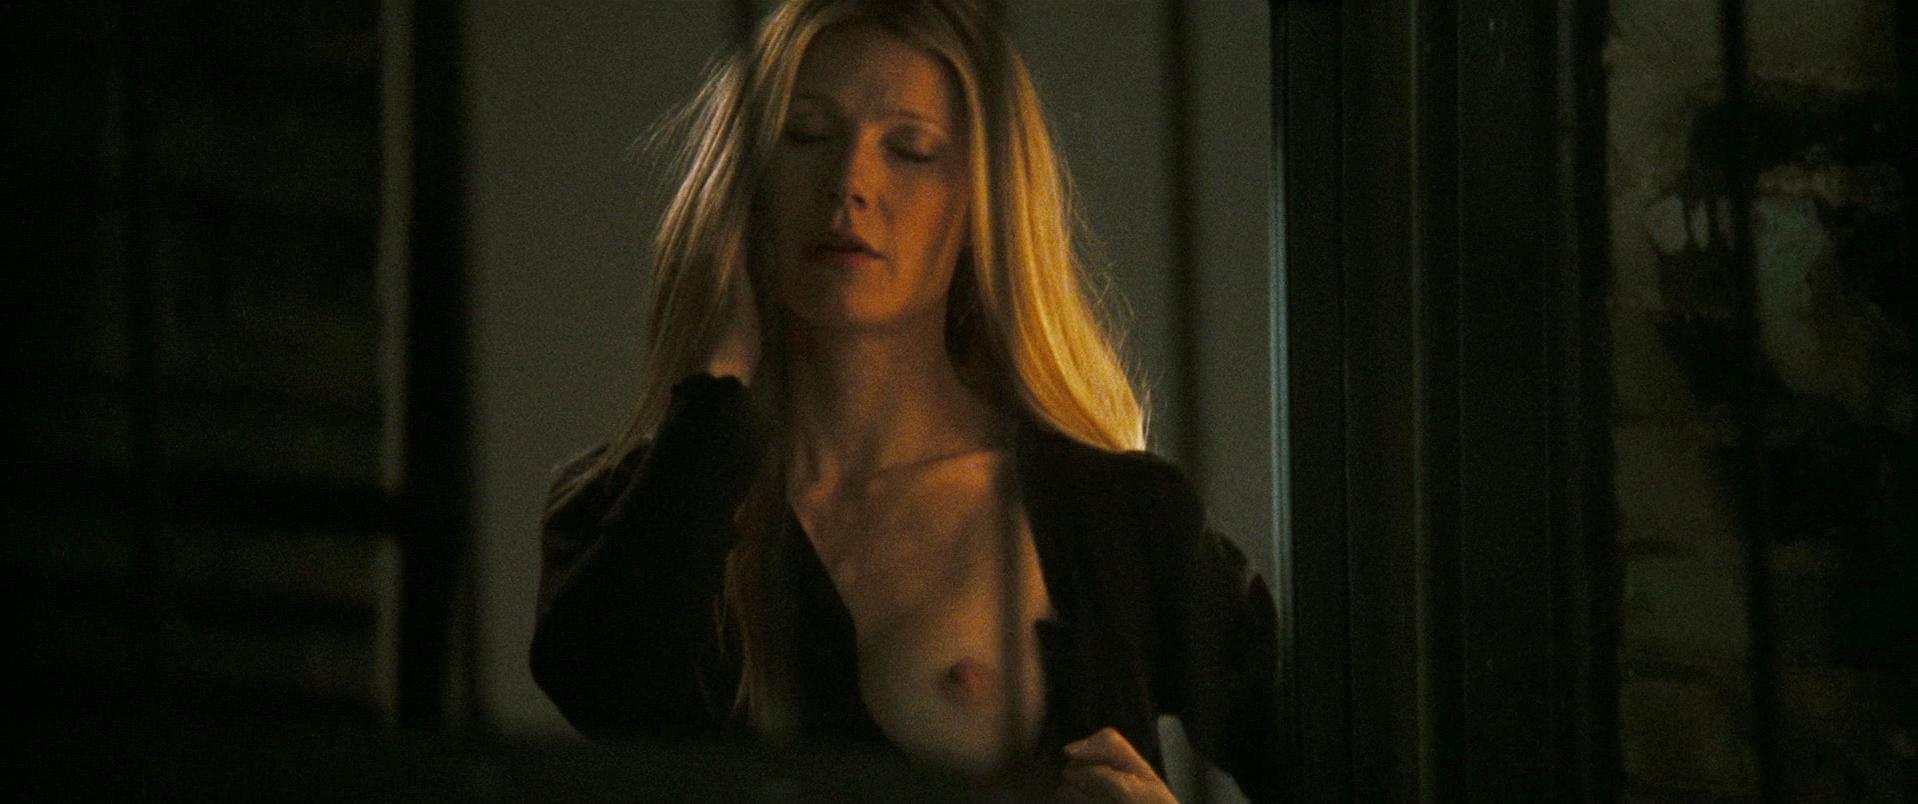 Gwyneth Paltrow Nude Photos Videos nude (14 photos), Fappening Celebrites image